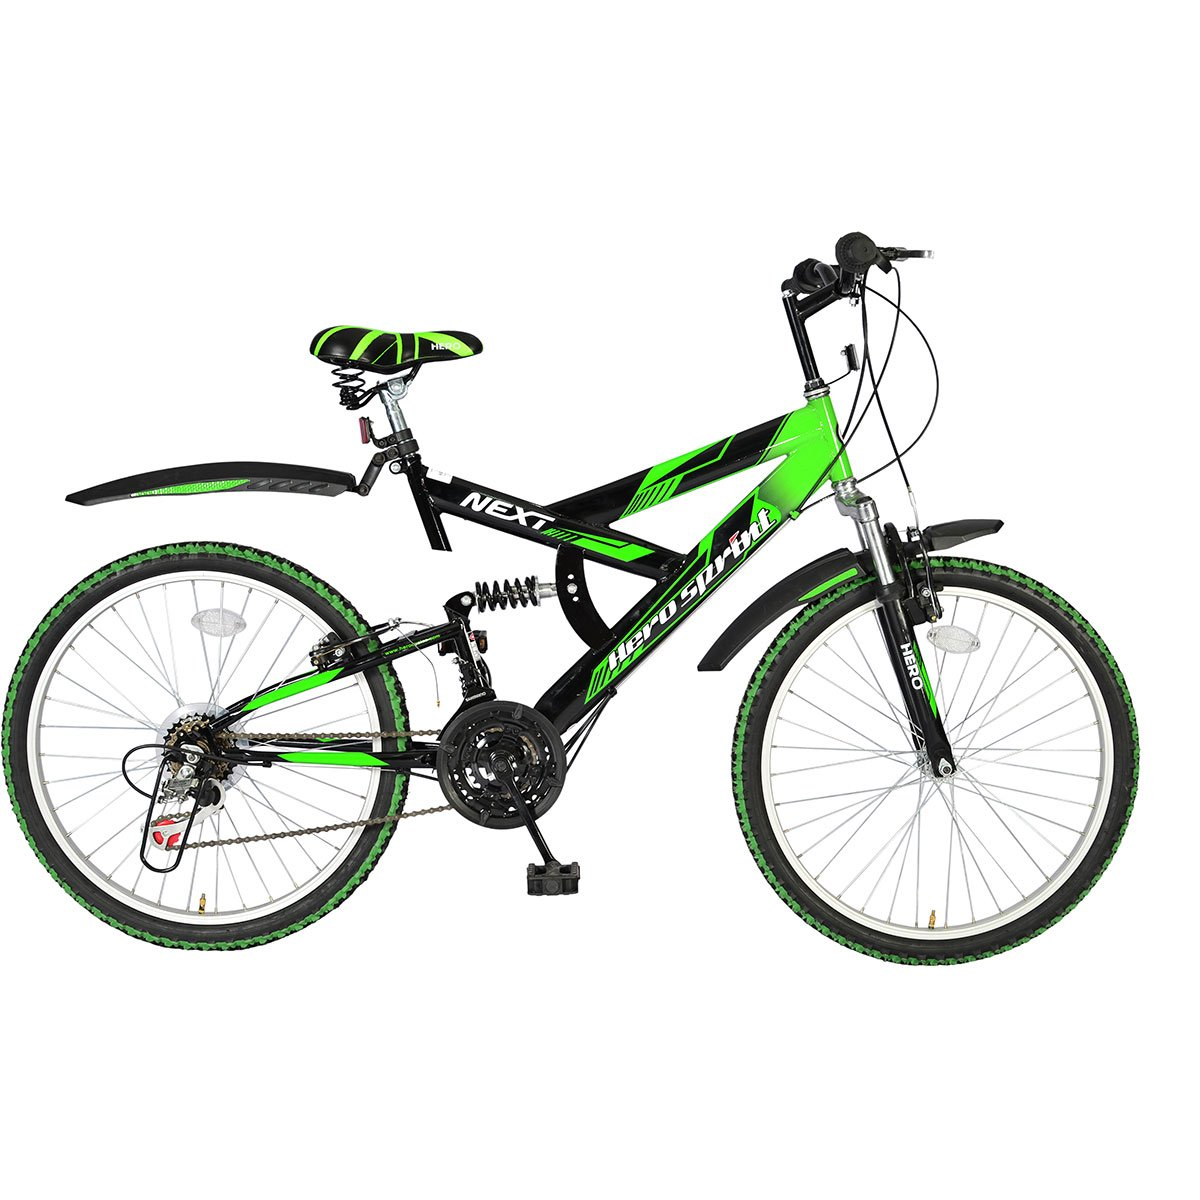 Hero Sprint Next 26T 6 Speed Mountain Cycle (Green/Black